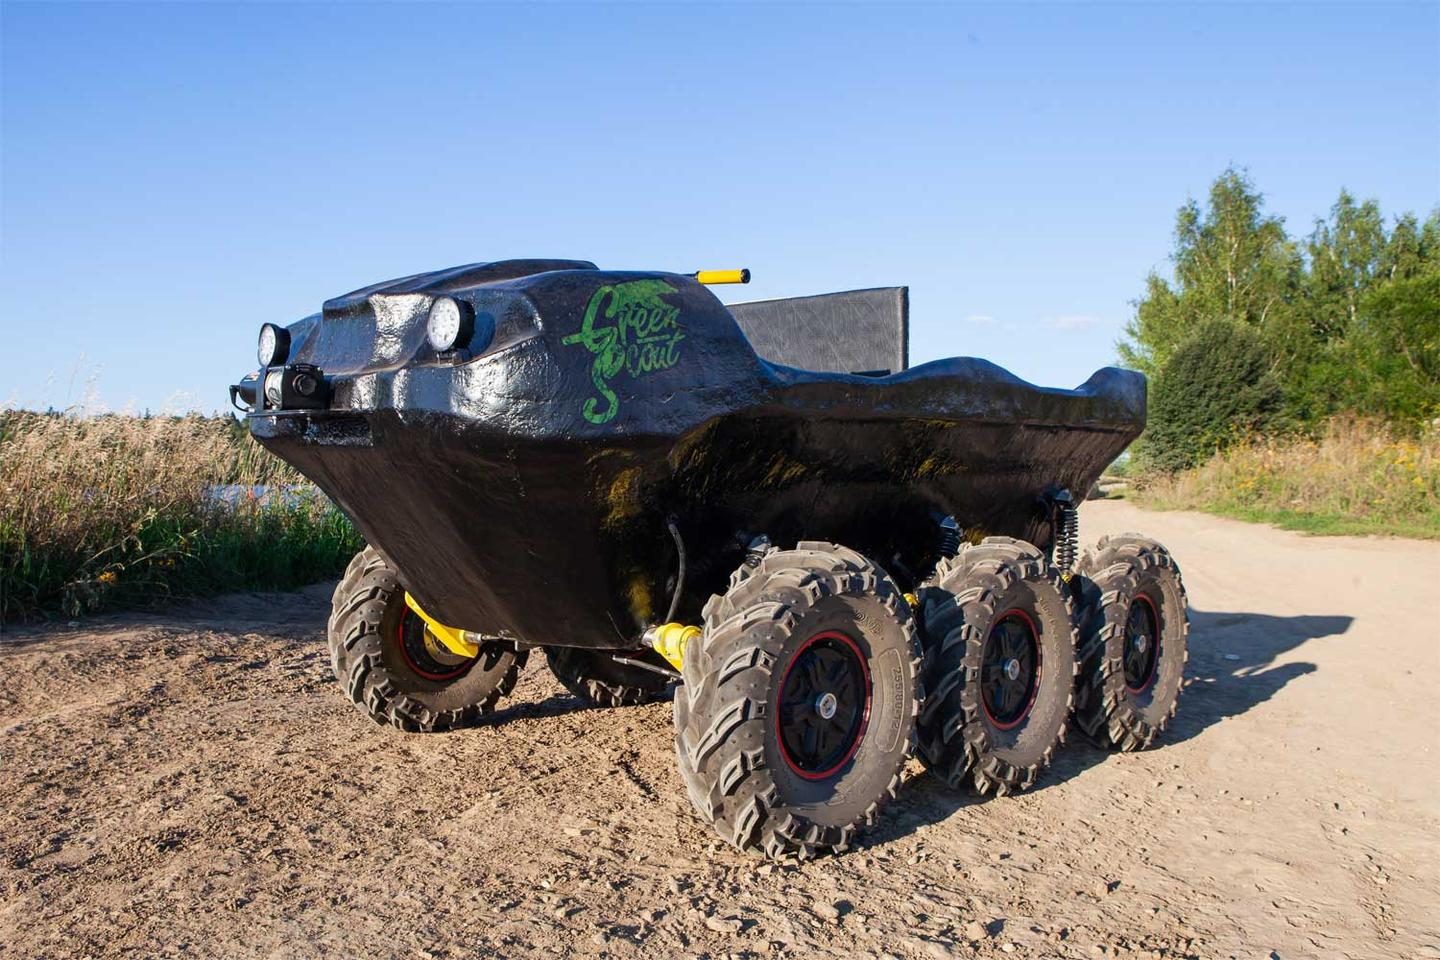 The Green Scout ATV is 3.1 m long, 1.8 m wide and 1.2 m high (10.2 by 5.9 by 3.9 ft)